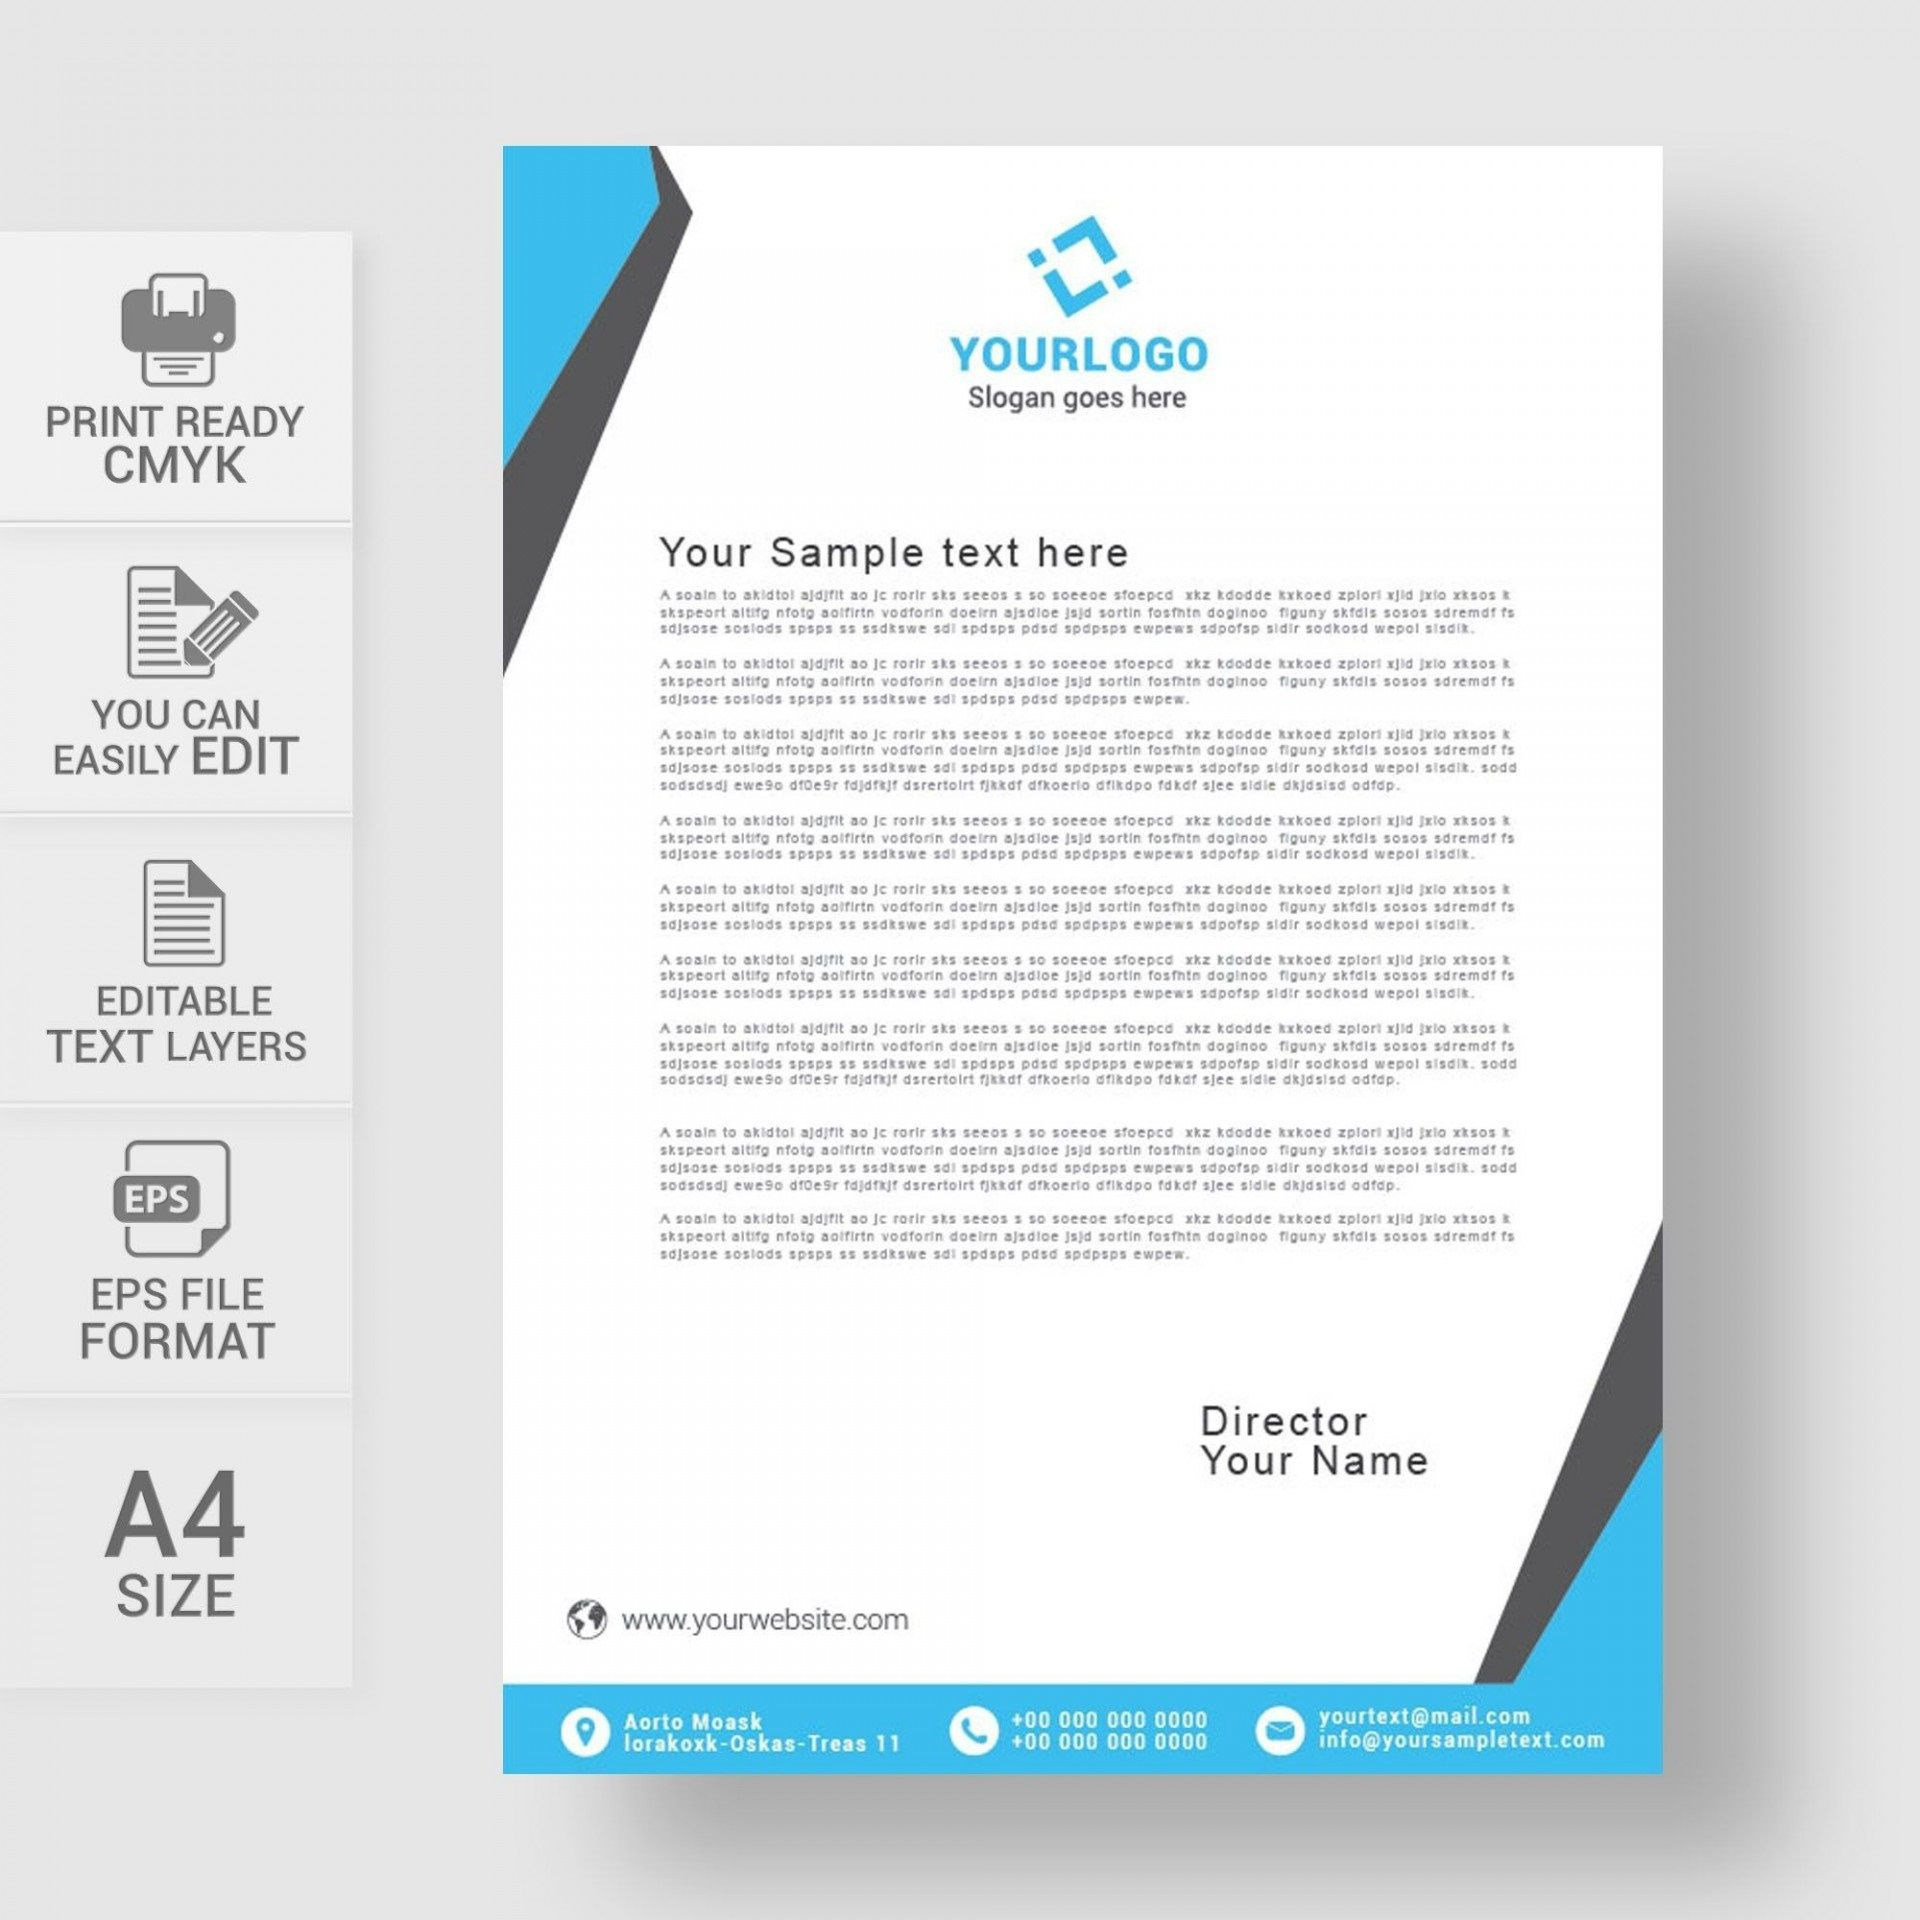 008 Formidable Letterhead Template Free Download Psd Highest Quality  Corporate A4Full